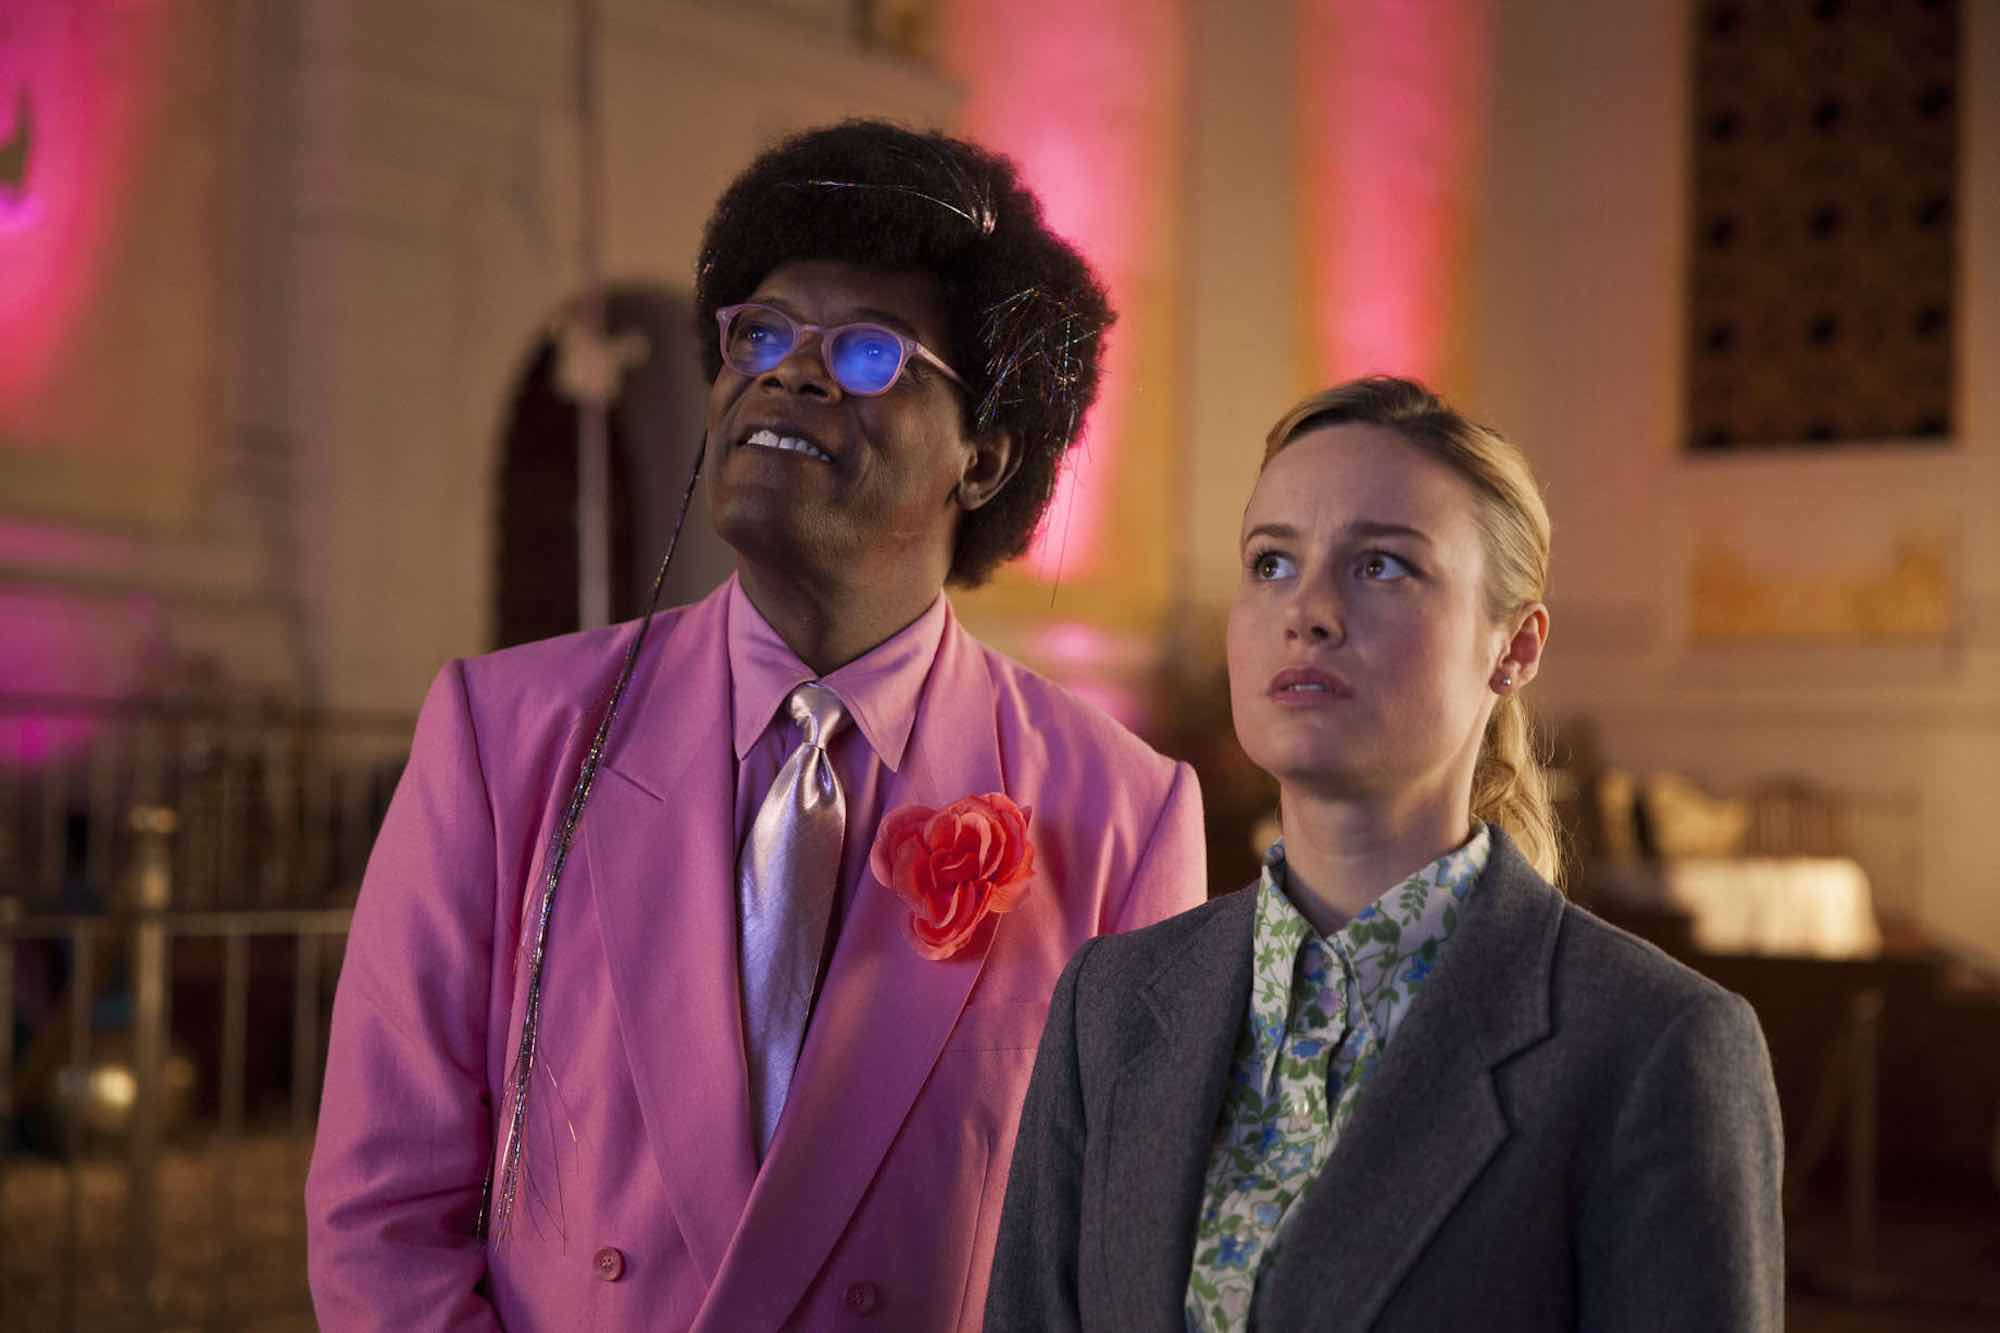 Brie Larson's directorial debut starring Samuel L. Jackson centers around a down-and-out painter who moves back in with her parents.